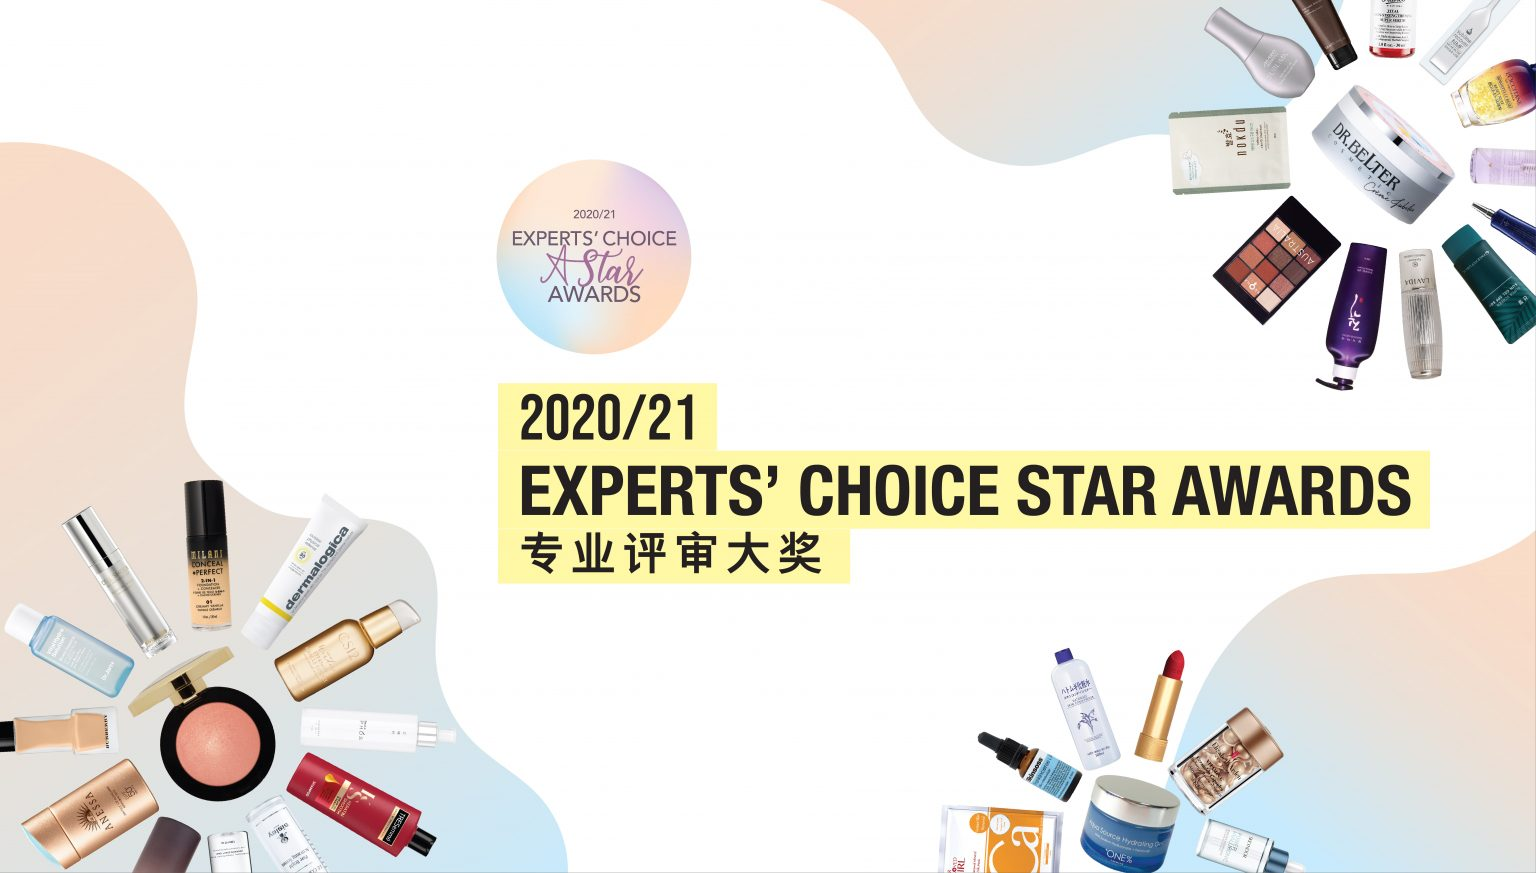 sisters-experts-choice-beauty-star-awards-2020-21